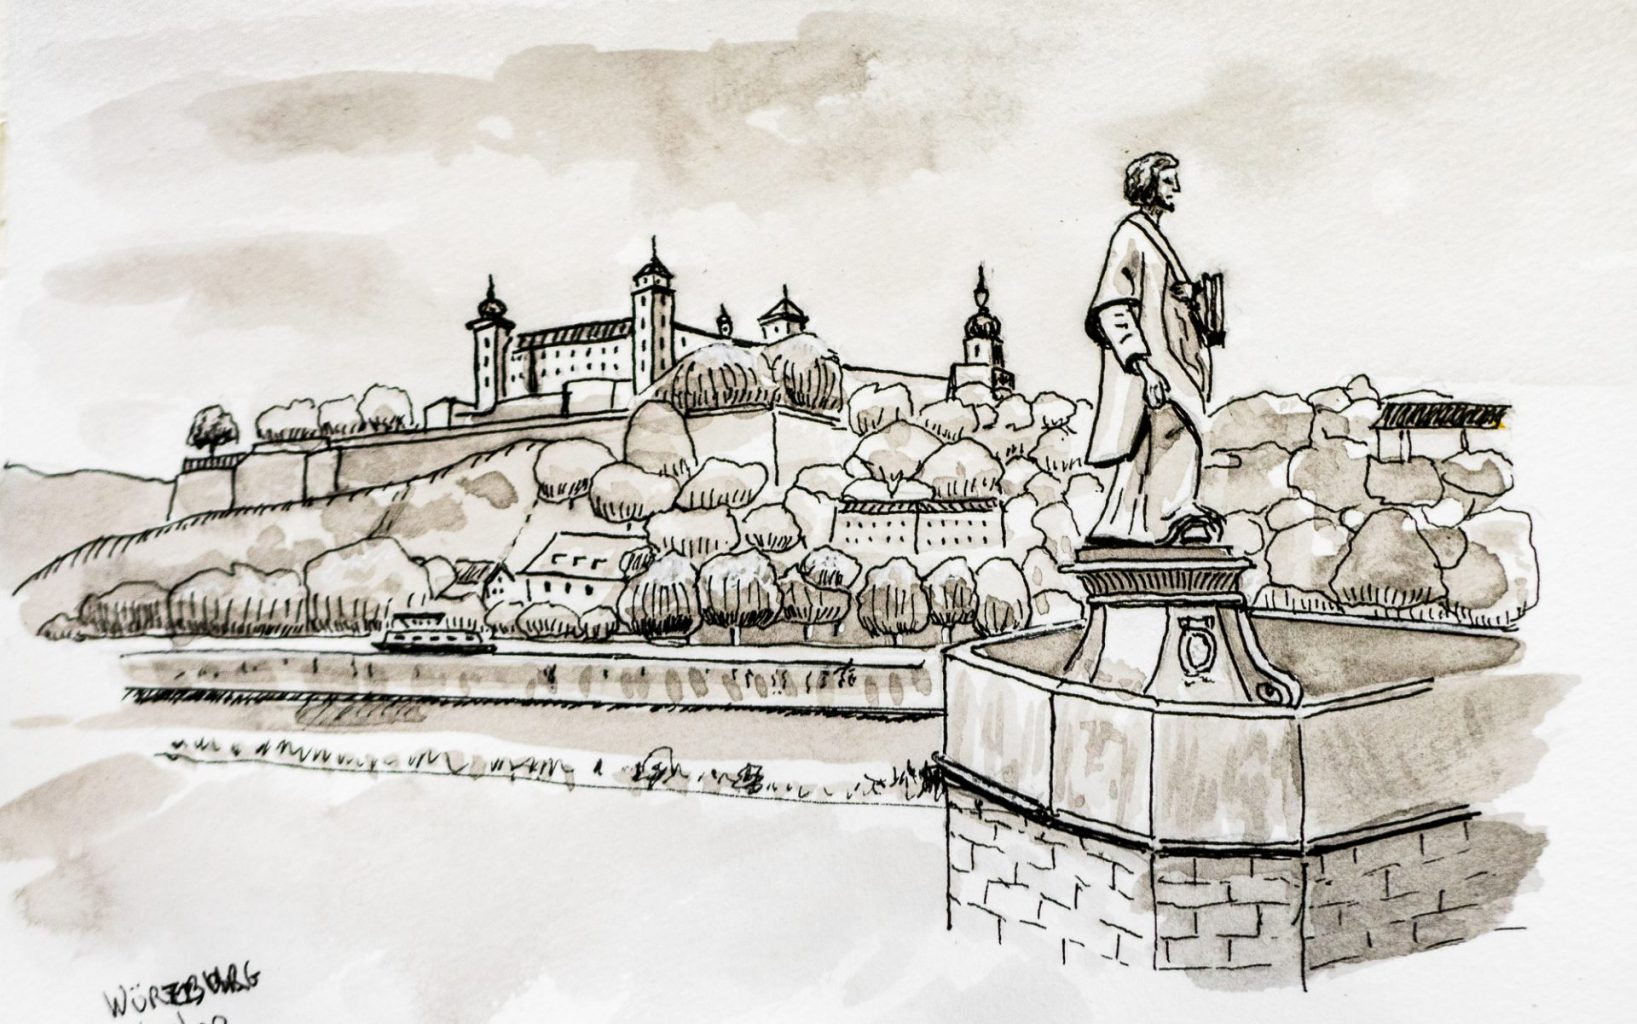 Pen and ink sketch of Wurzburg, Germany